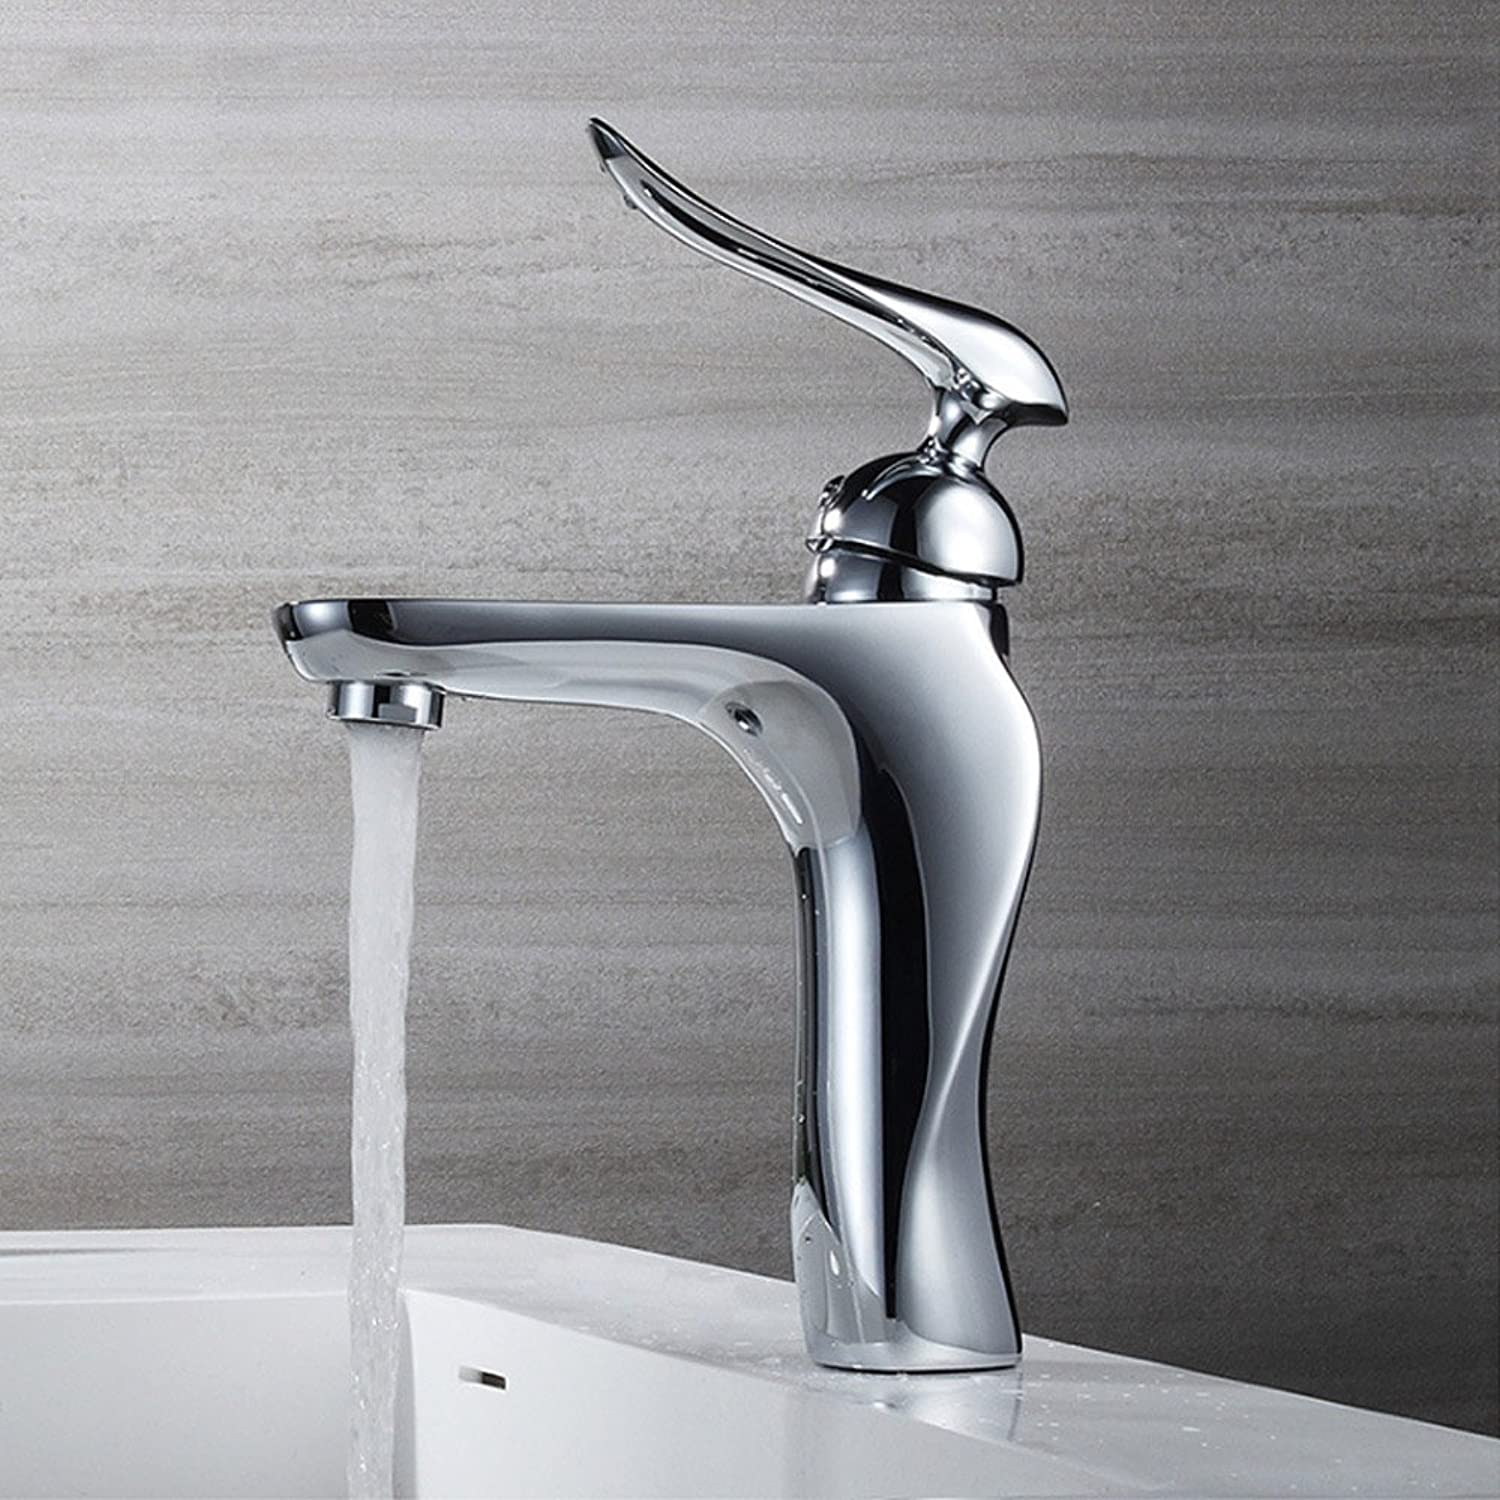 Aawang New Styling Brass Basin Deck Mount Bathroom Faucets Vanity Vessel Sinks Mixer Tap Chrome